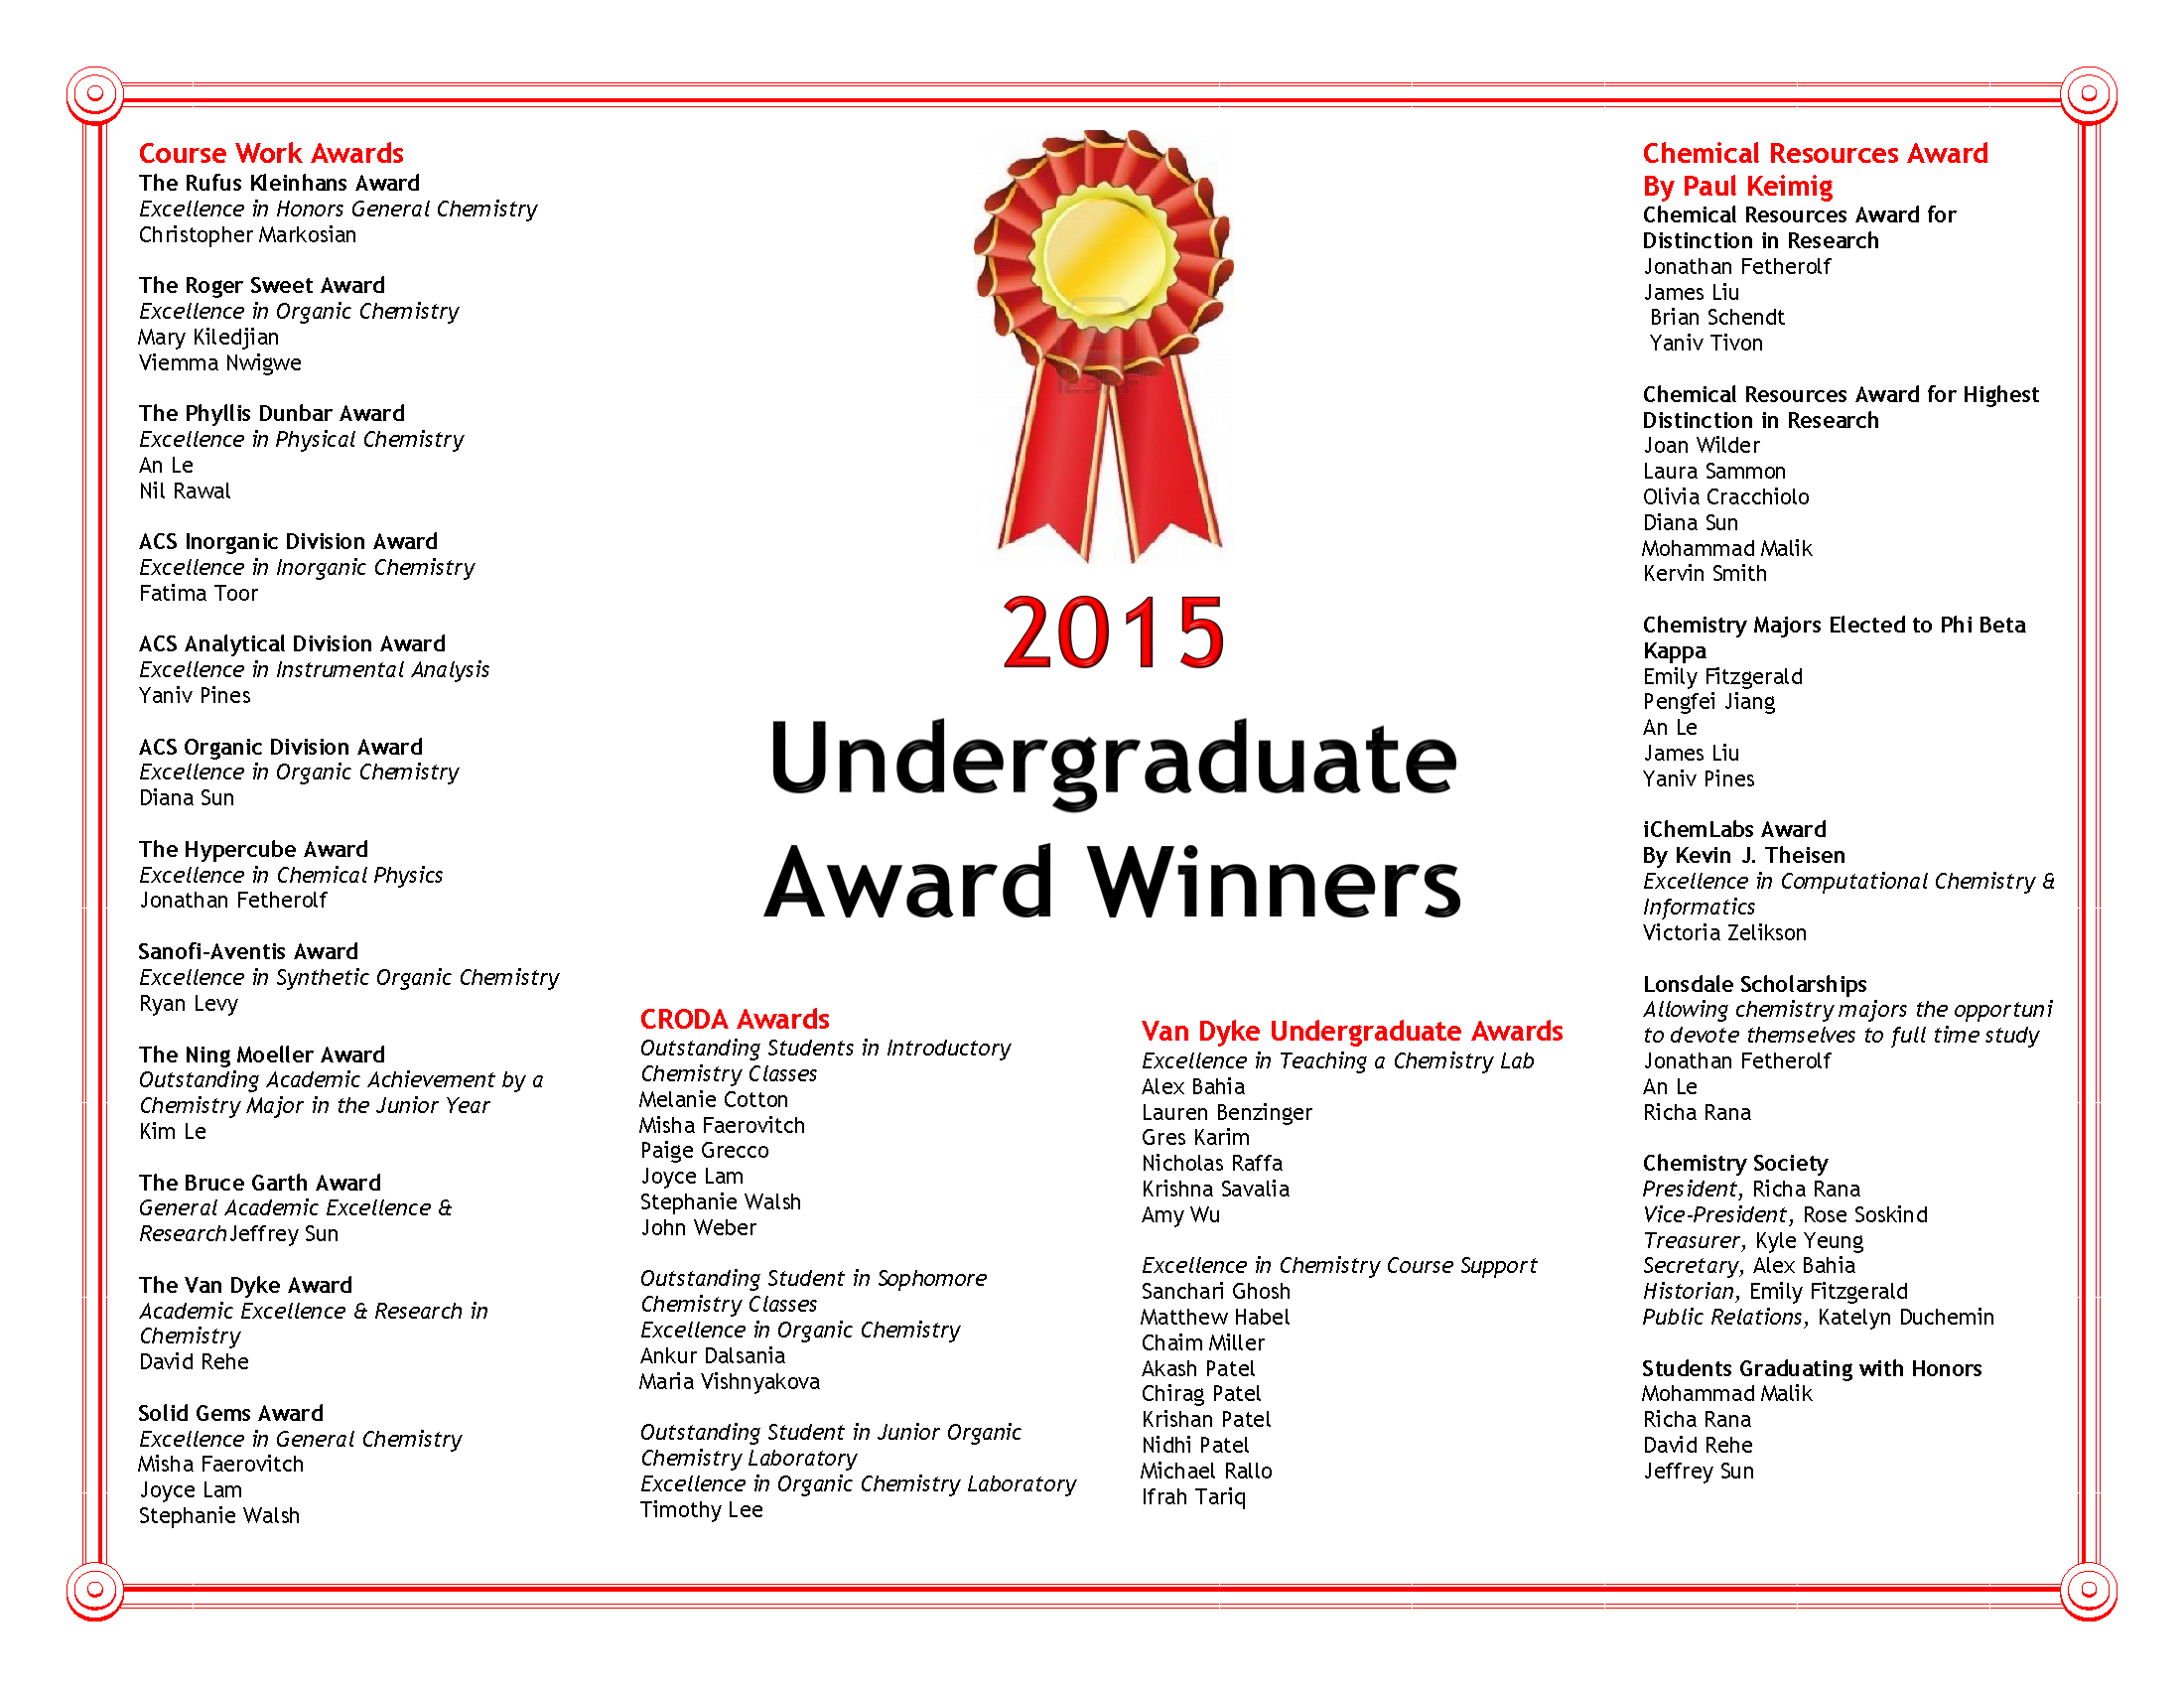 2015 Undergrad Awards